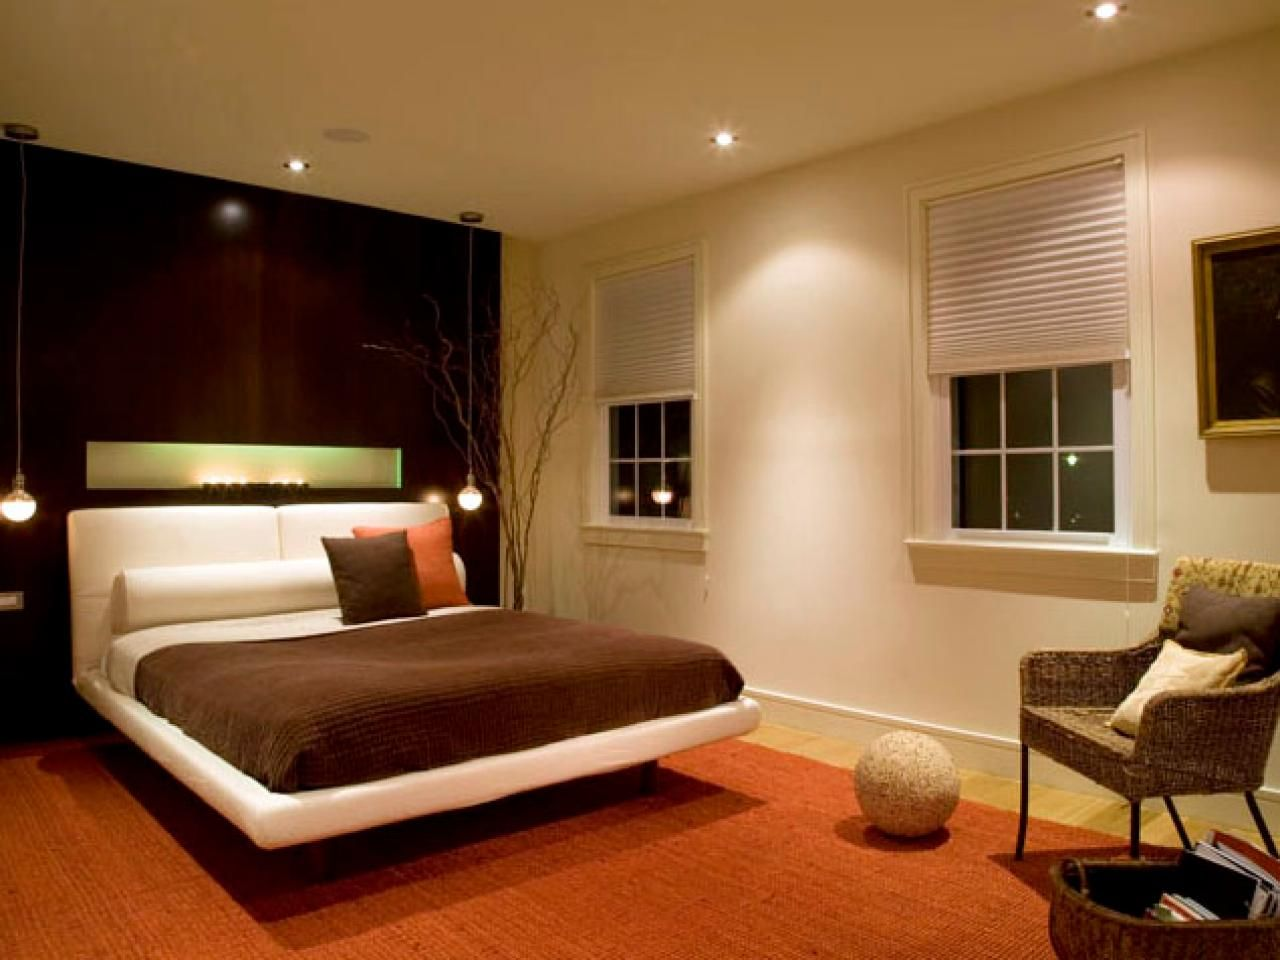 above bed lighting. Image Result For Lighting Over Tv Above Bed E